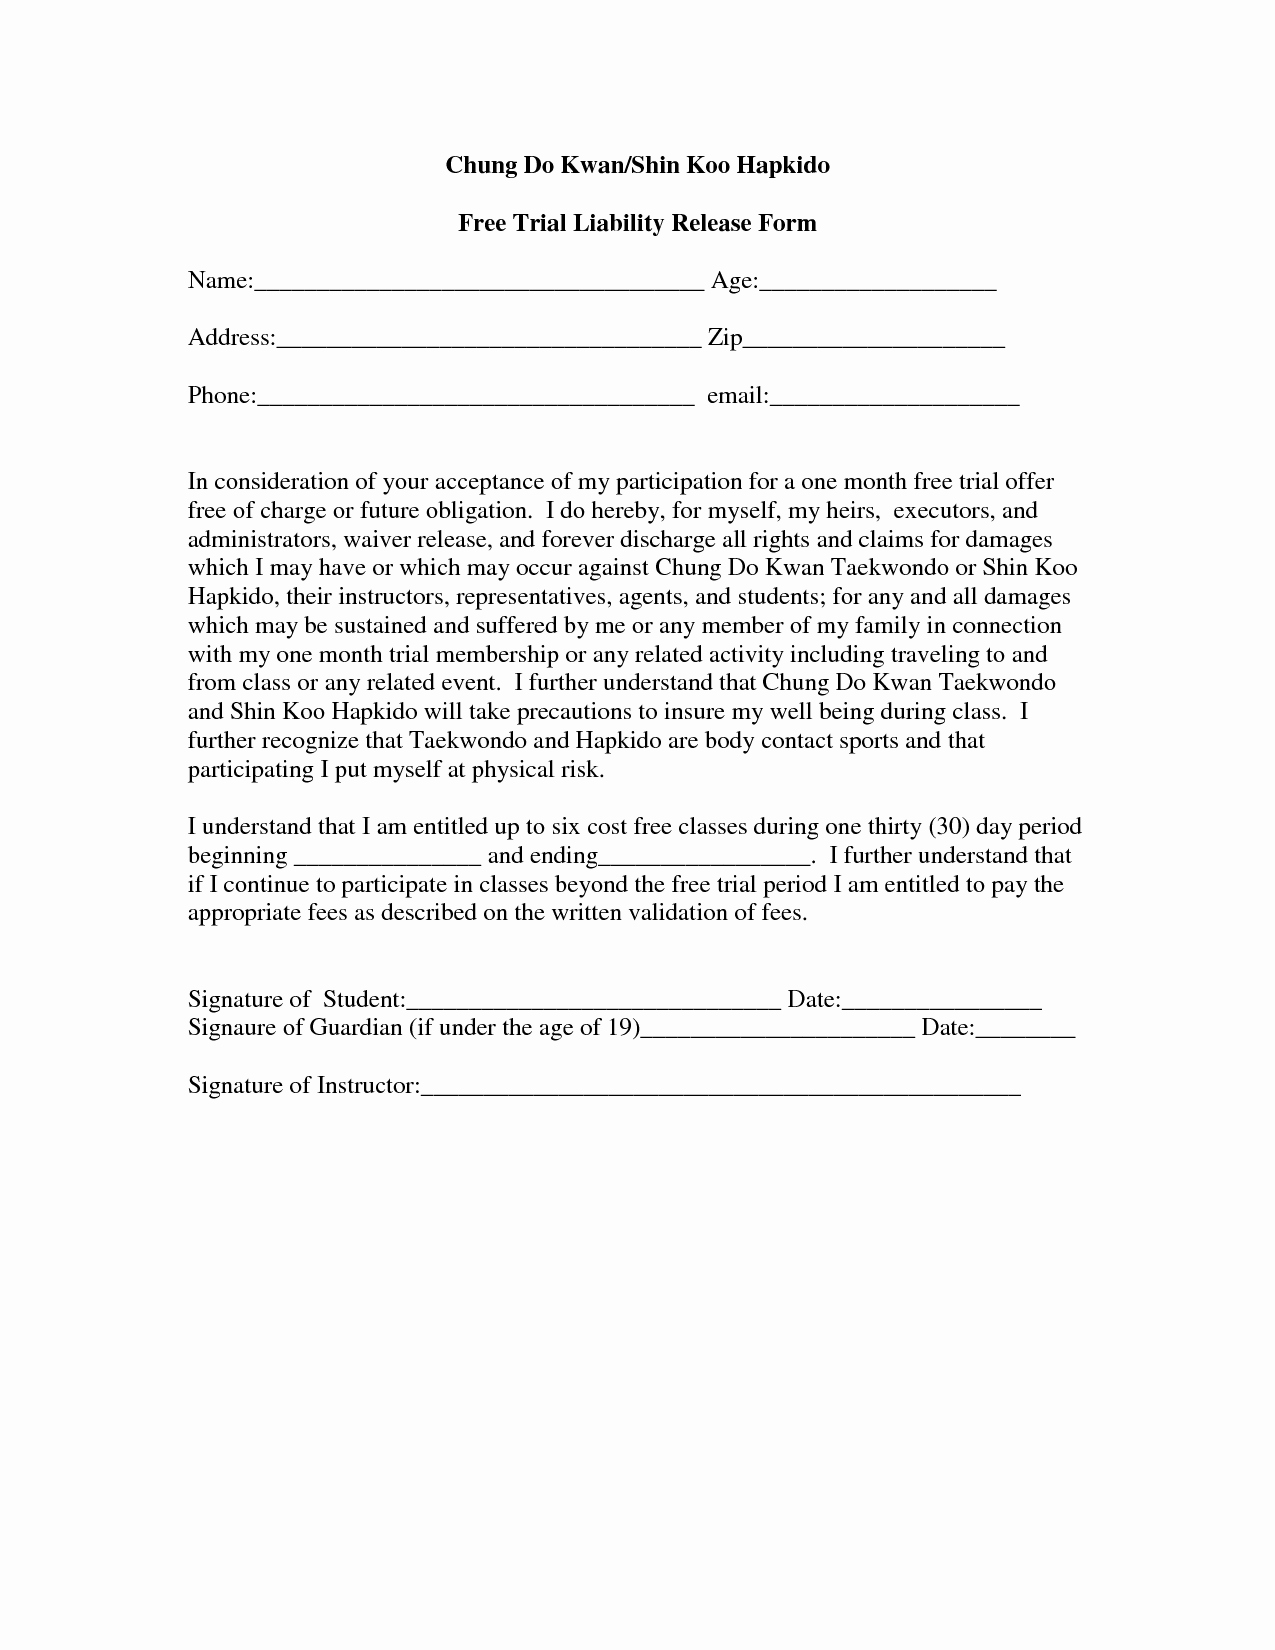 Waiver form Template for Sports Fresh Free Printable Liability form form Generic